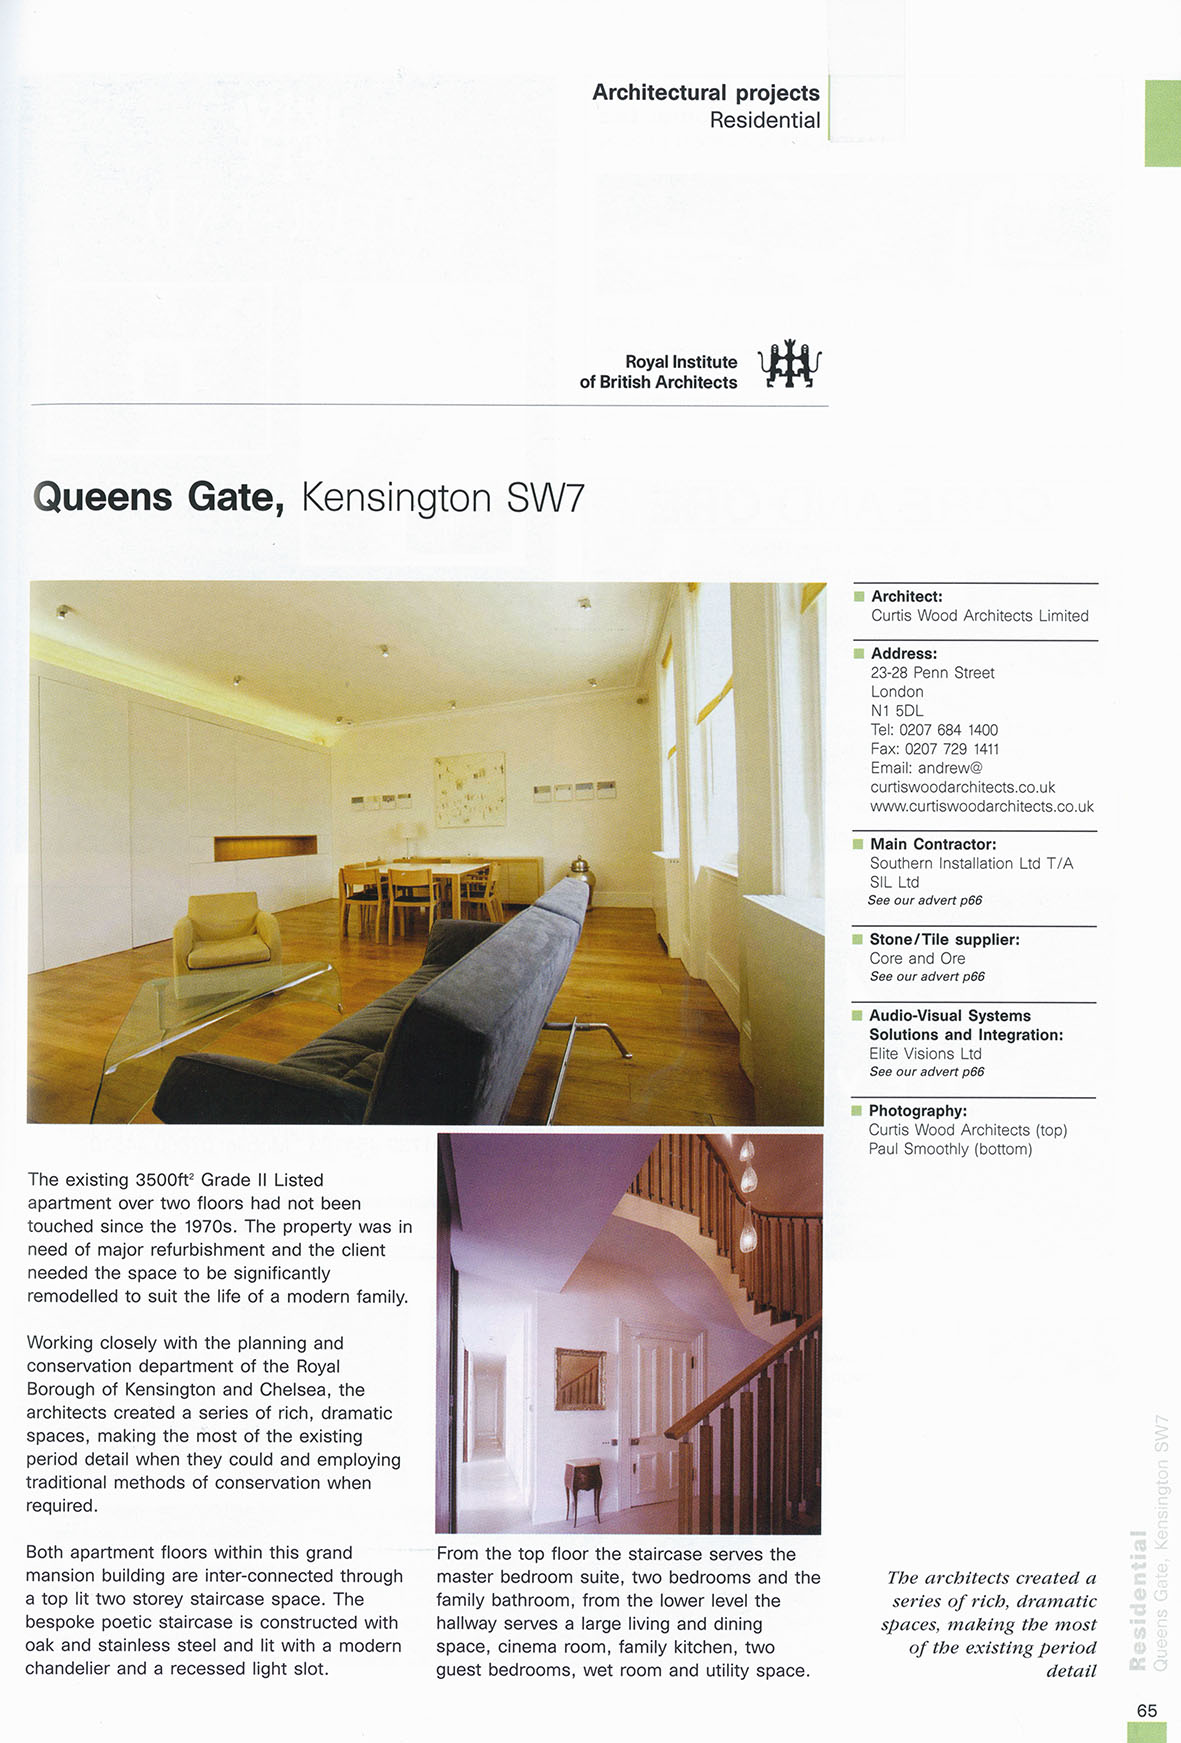 RIBA Yearbook 2007